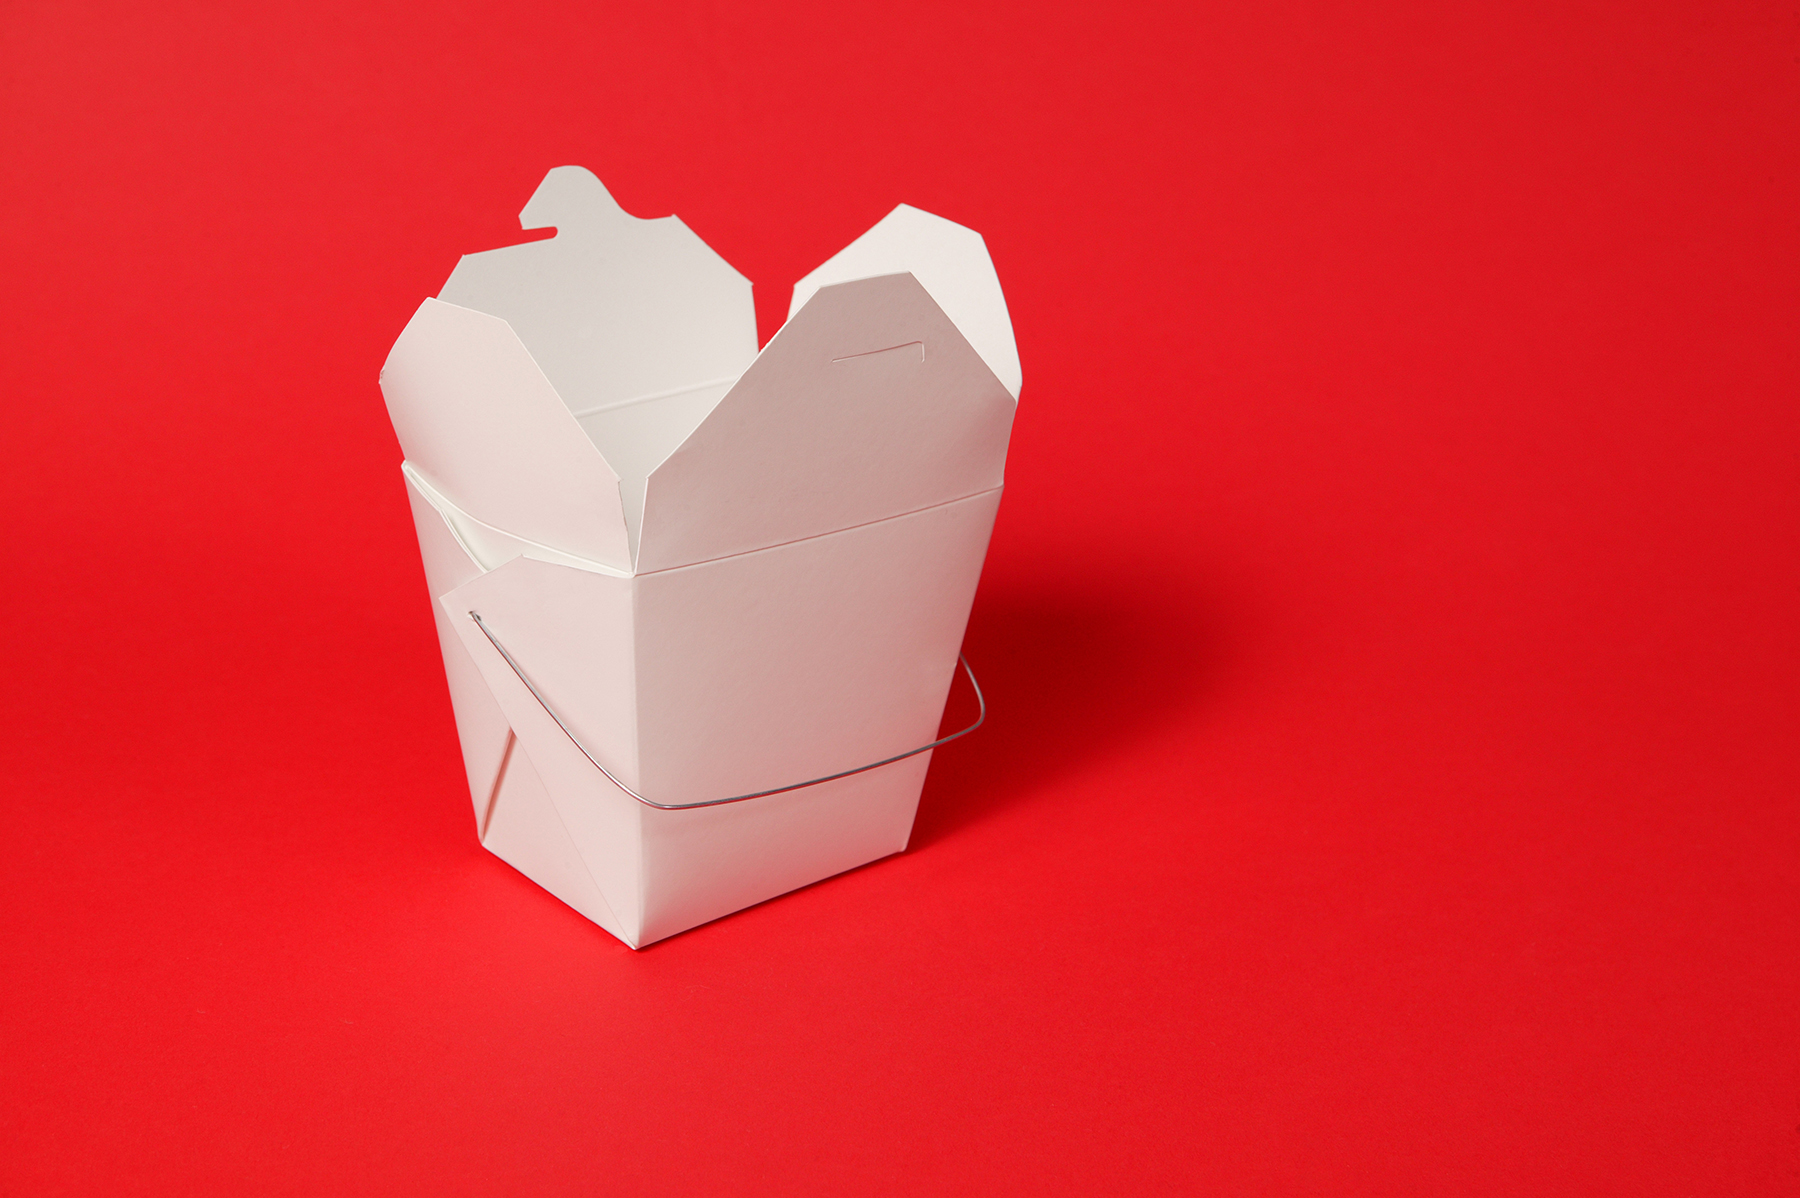 Takeout container on red background